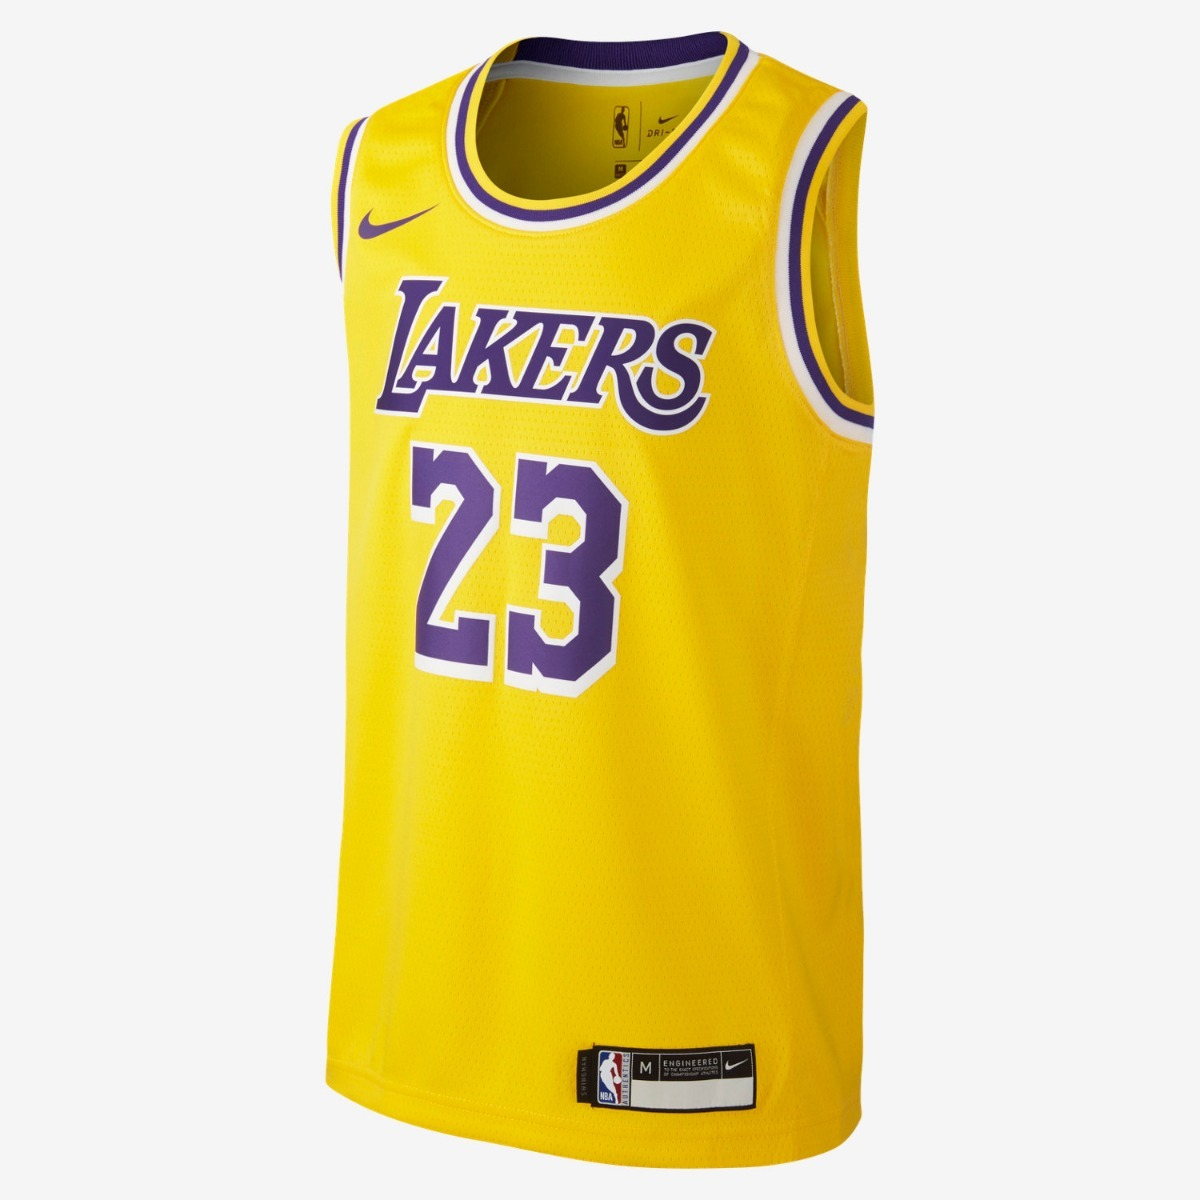 Angeles Nike Nba Camiseta Lebron James Los Lakers CxsrthQd